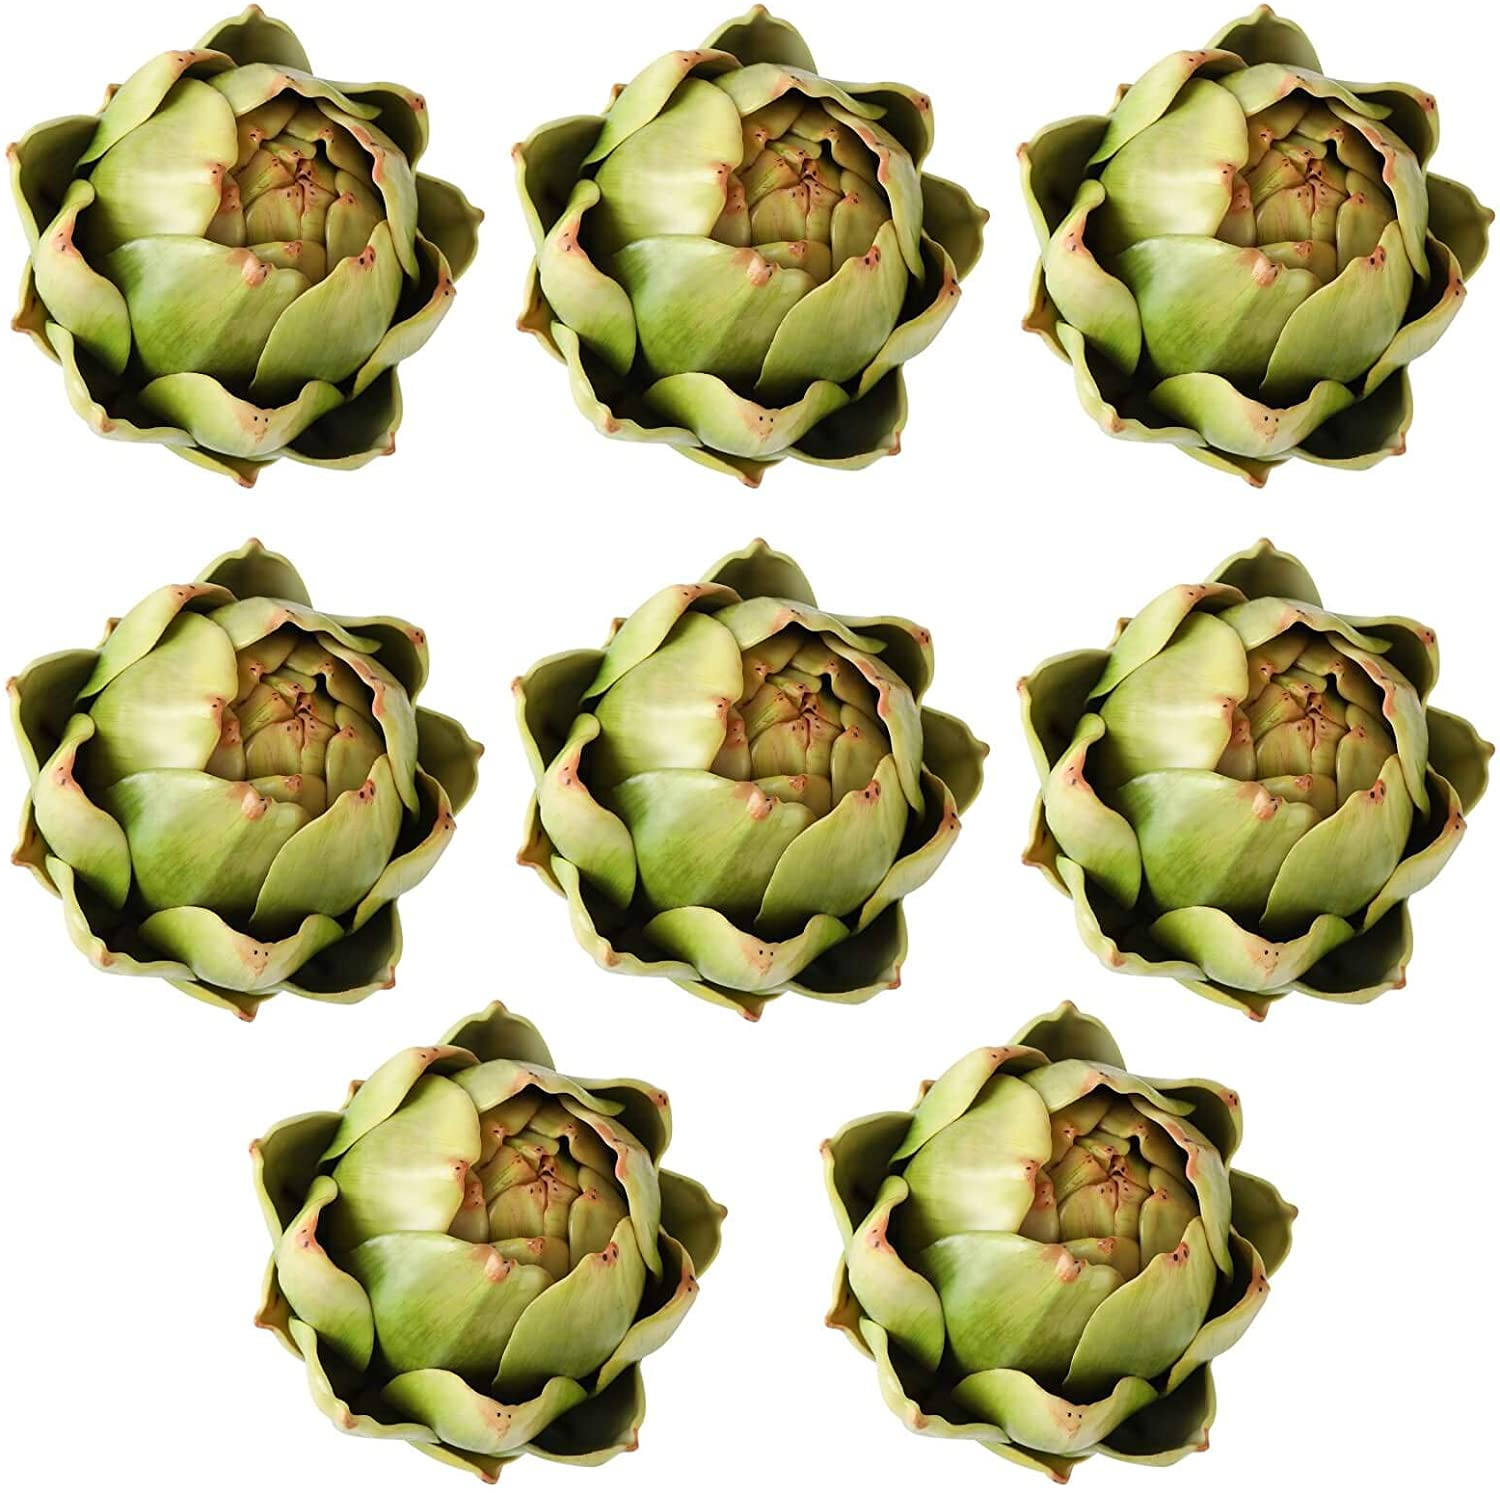 [8-Pack] Large Green Faux Artichokes - Artificial Vegetables and Fake Fruits for Kitchen Decorations (Green)